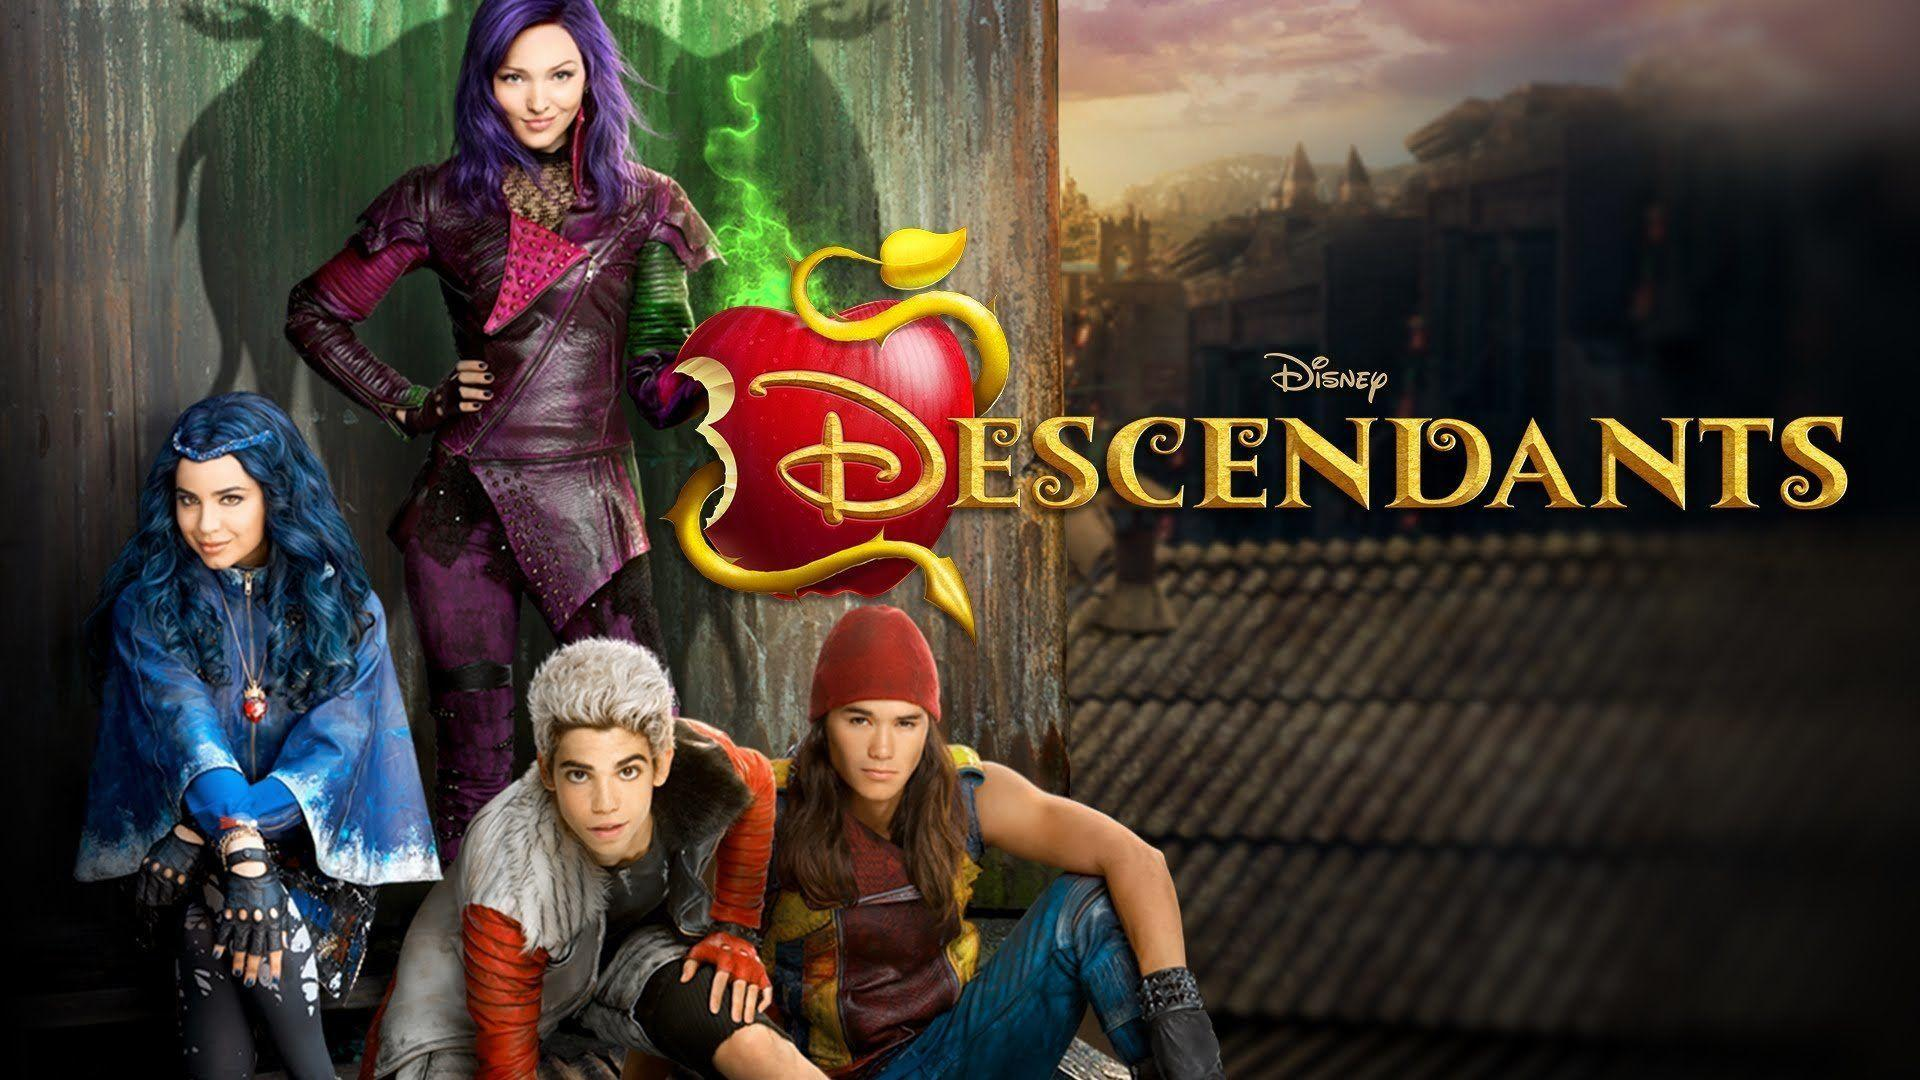 3 Descendants HD Wallpapers | Backgrounds - Wallpaper Abyss